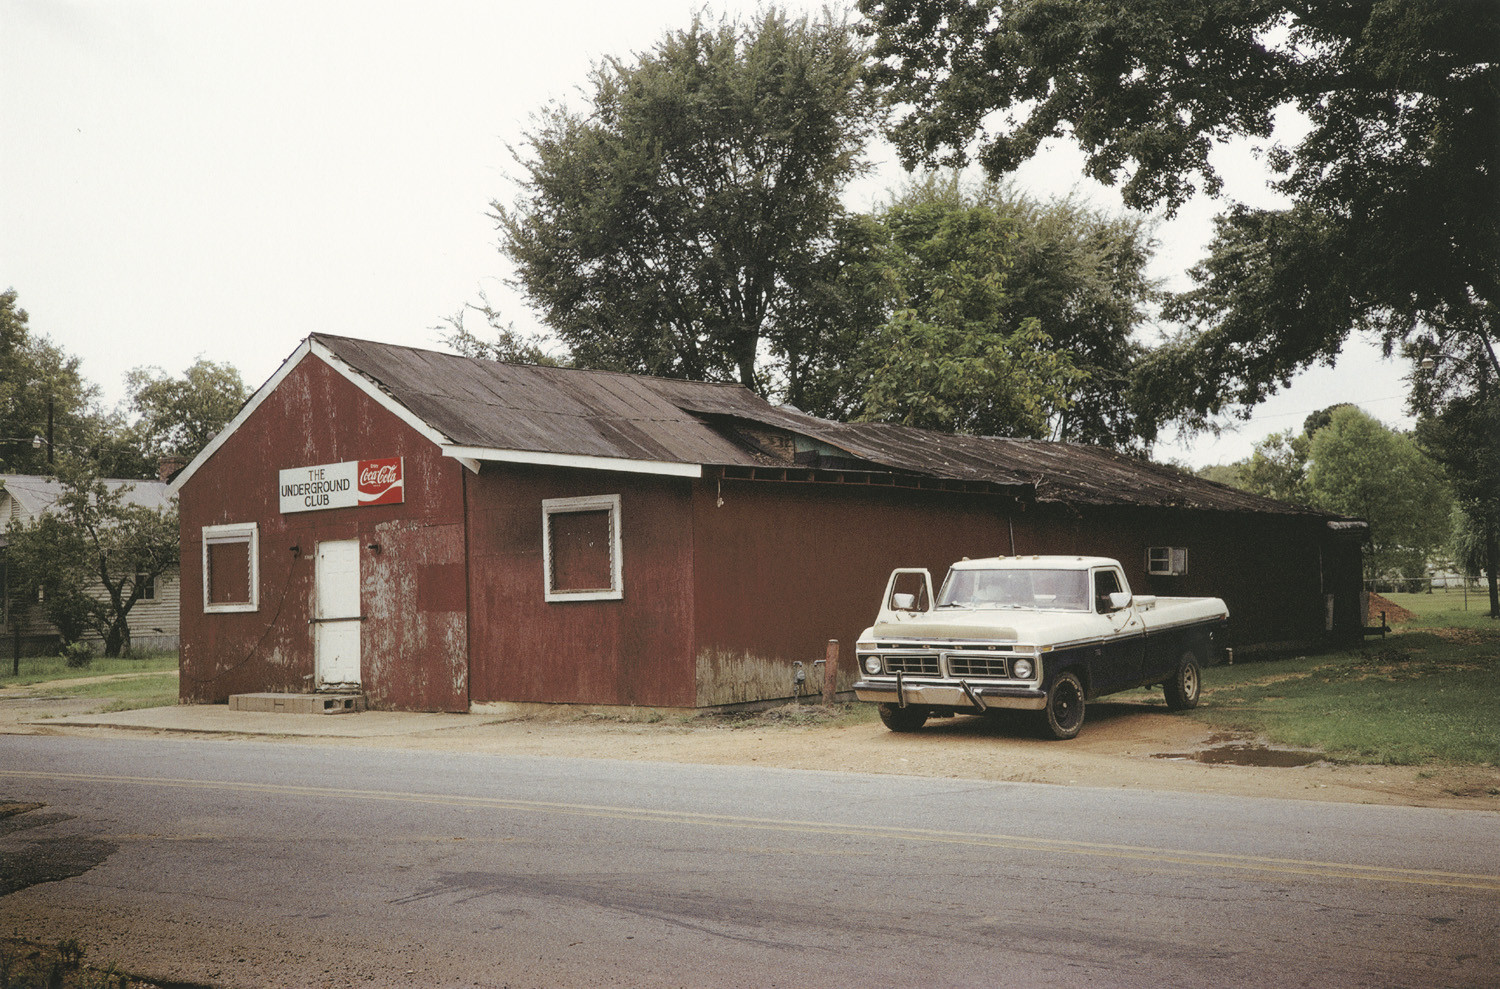 William Christenberry, Underground Nite Club, Greensboro, Alabama, 1994